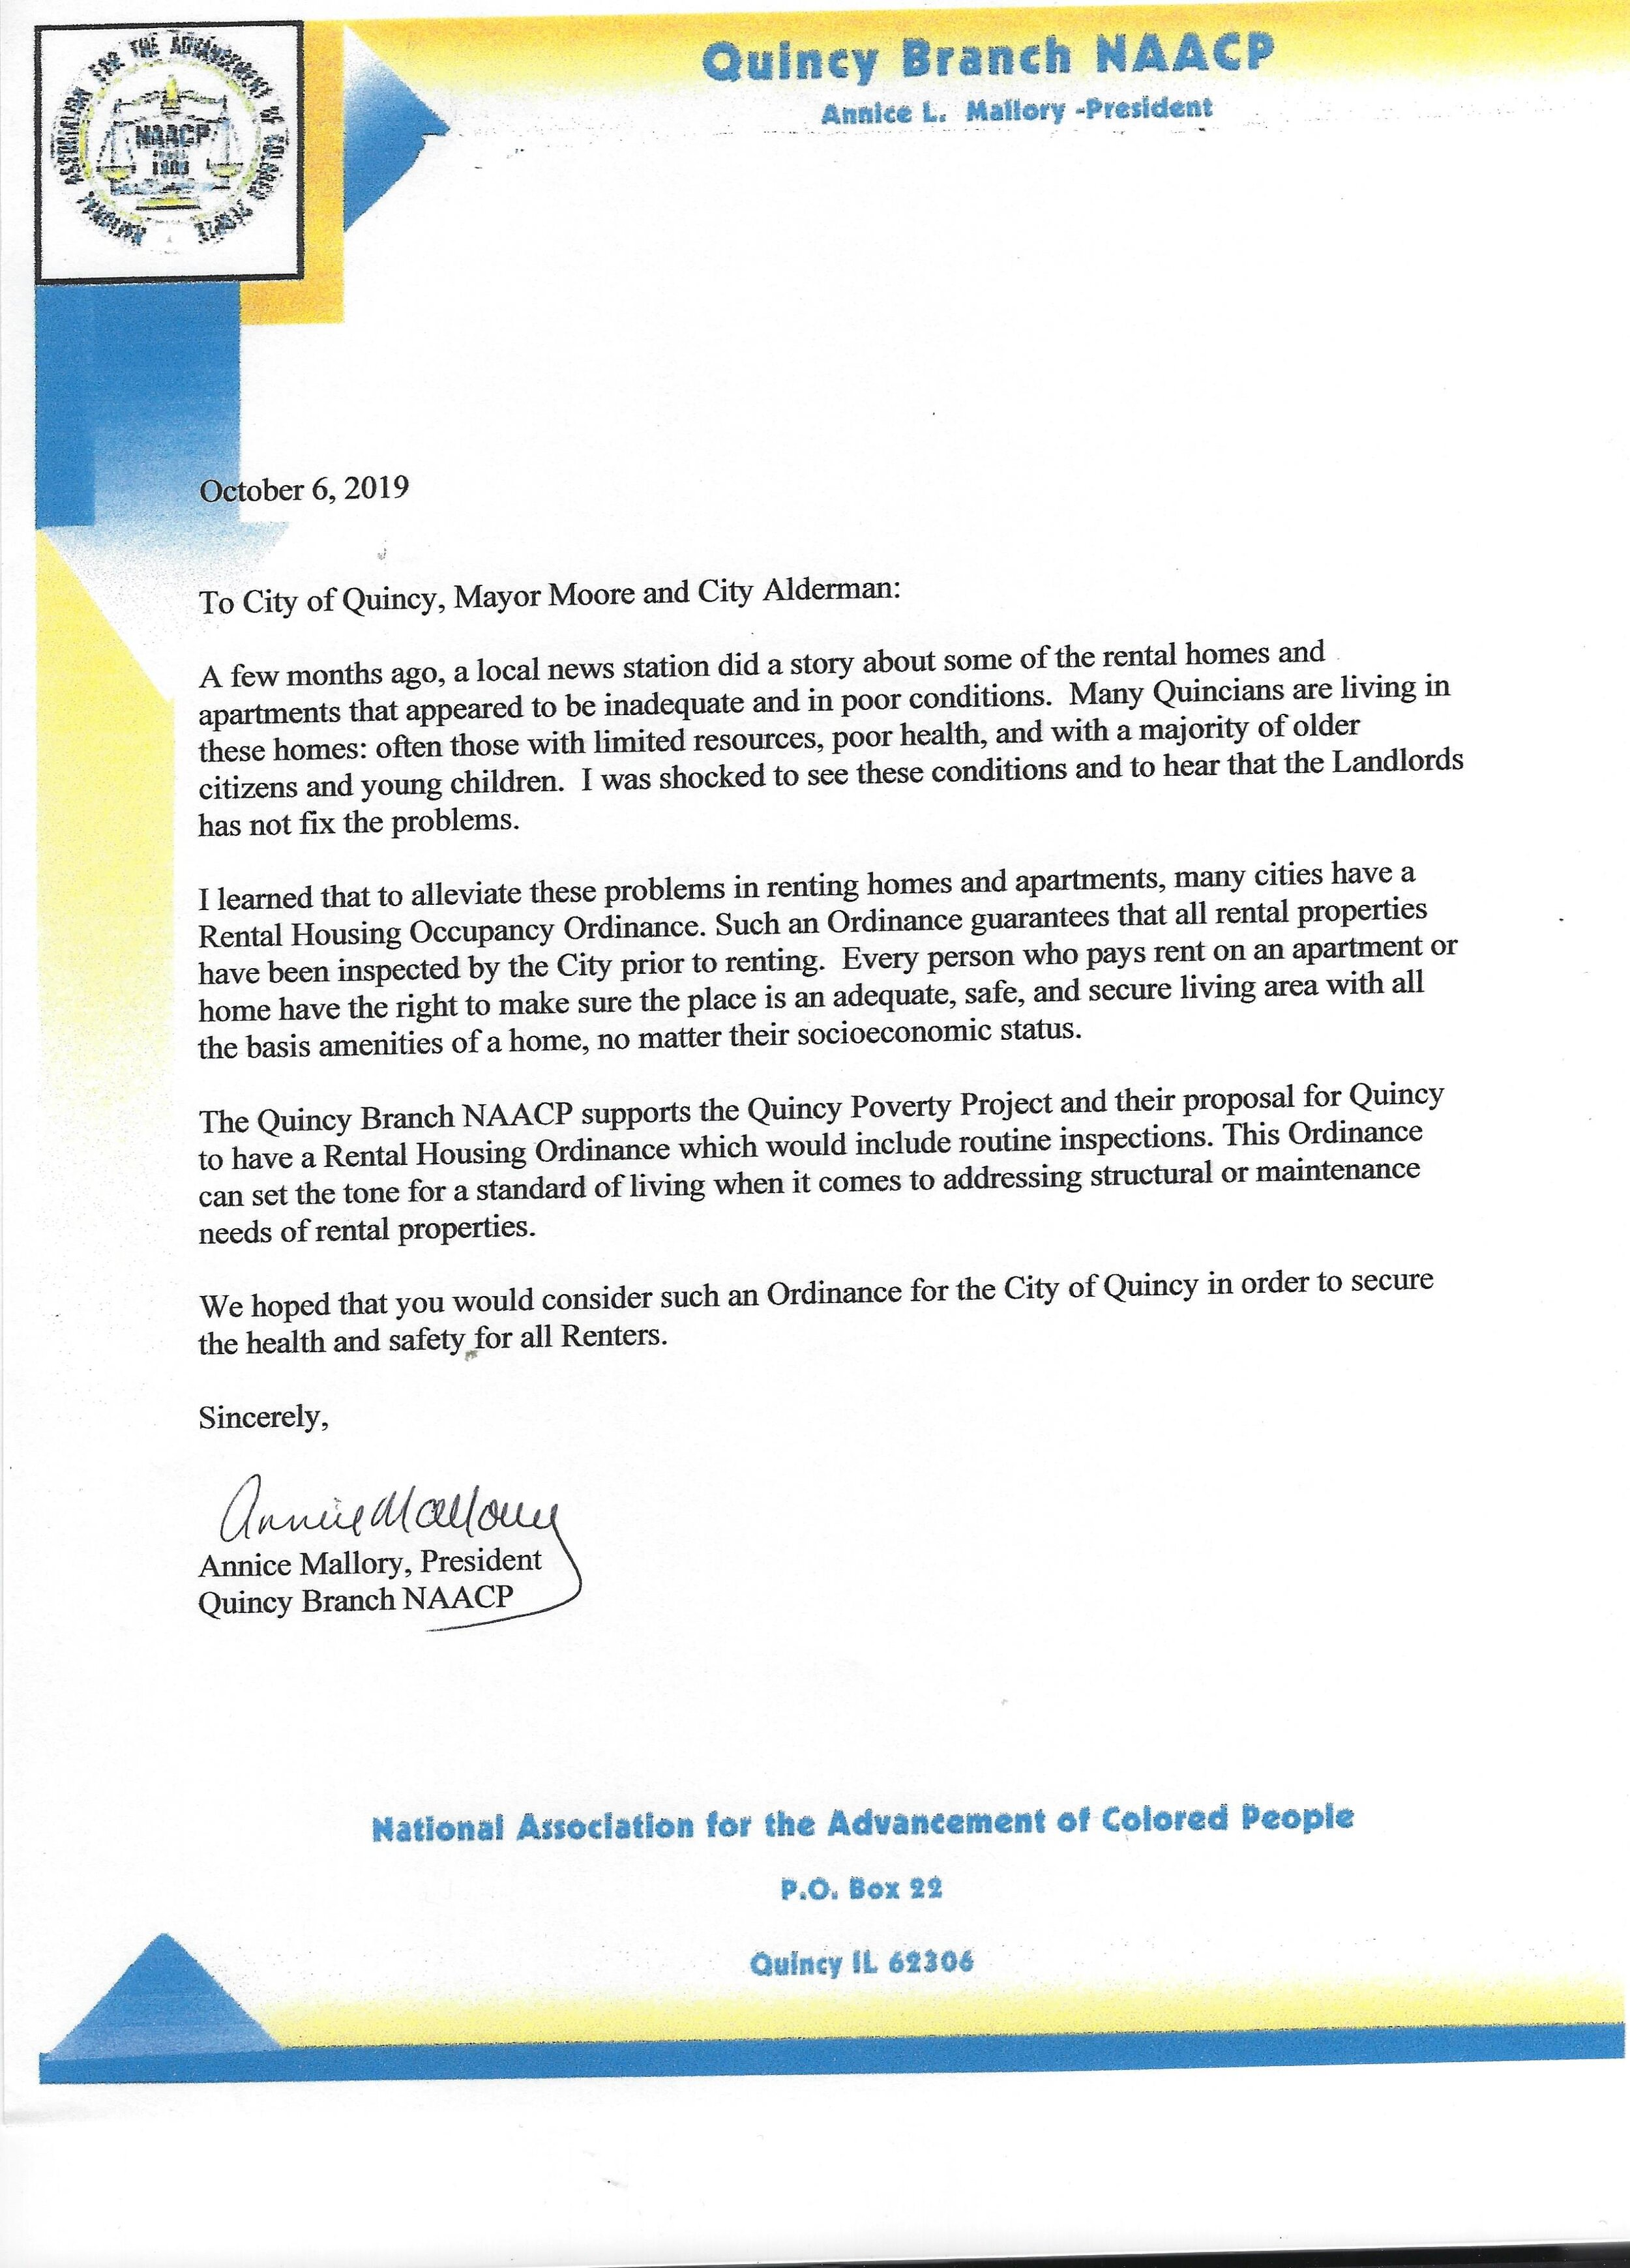 QIPP Letter of Support, Quincy Branch NAACP.jpeg